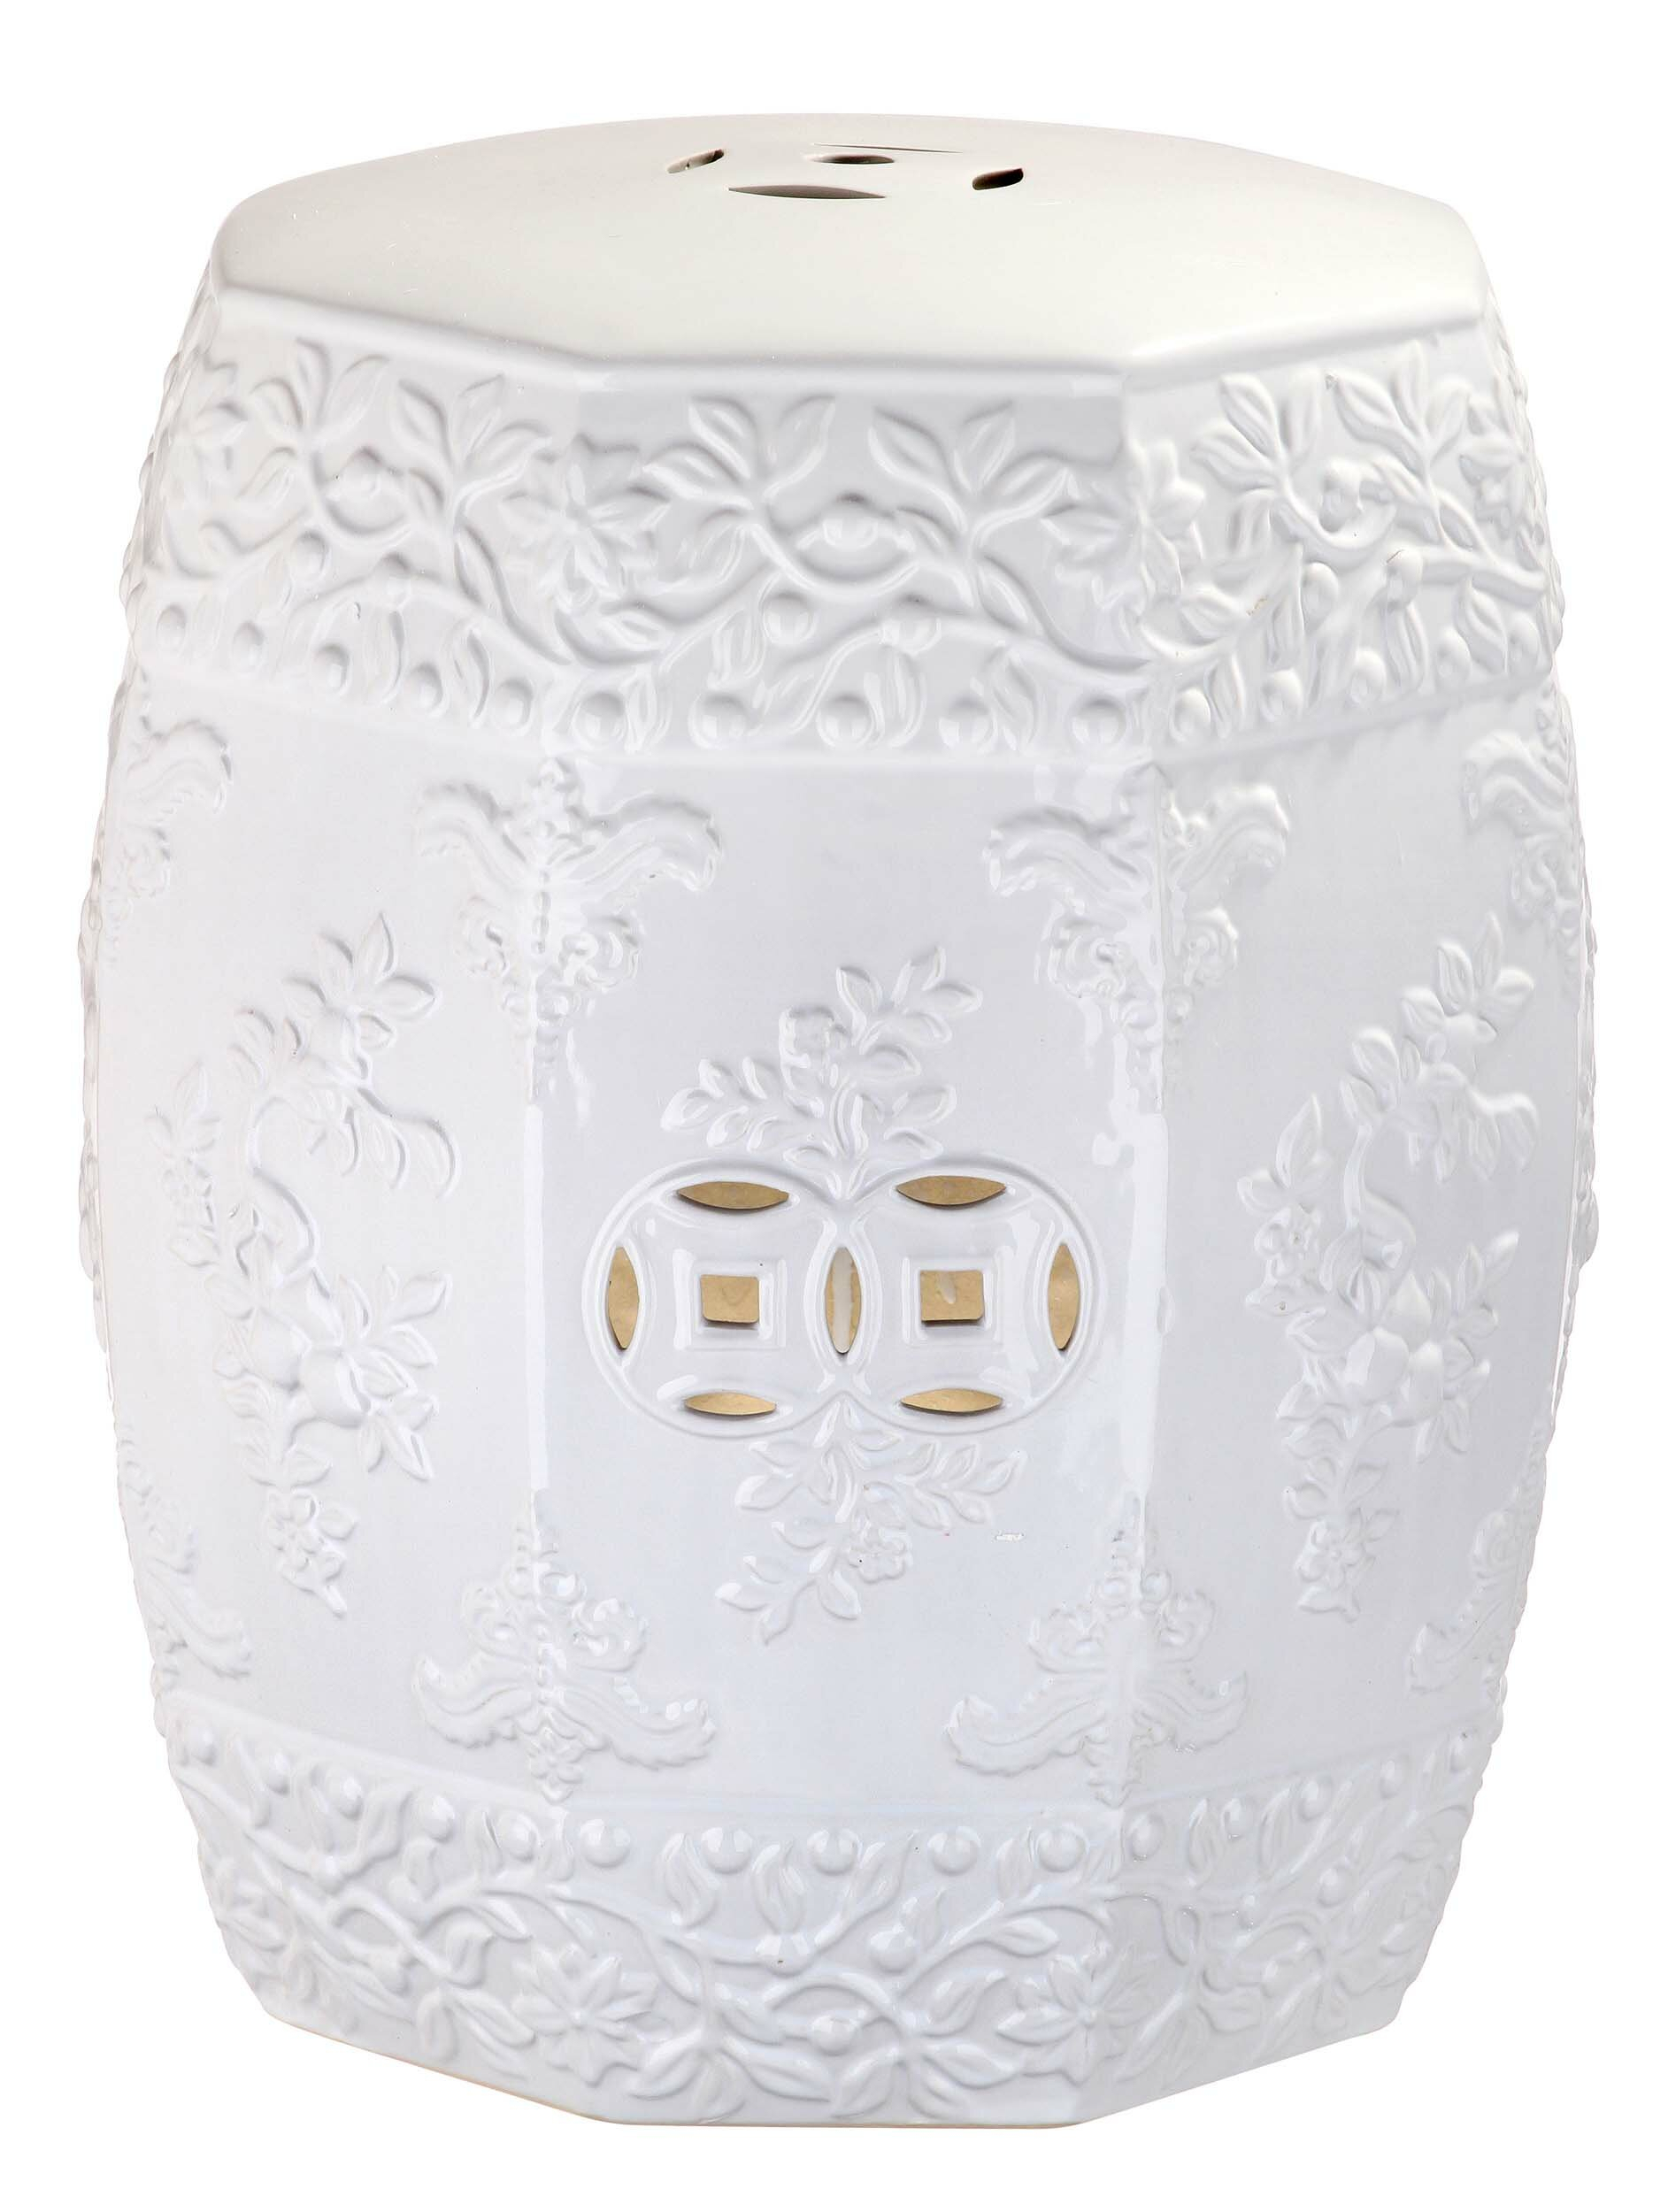 Renn Ceramic Garden Stool With Regard To Fifi Ceramic Garden Stools (View 4 of 25)